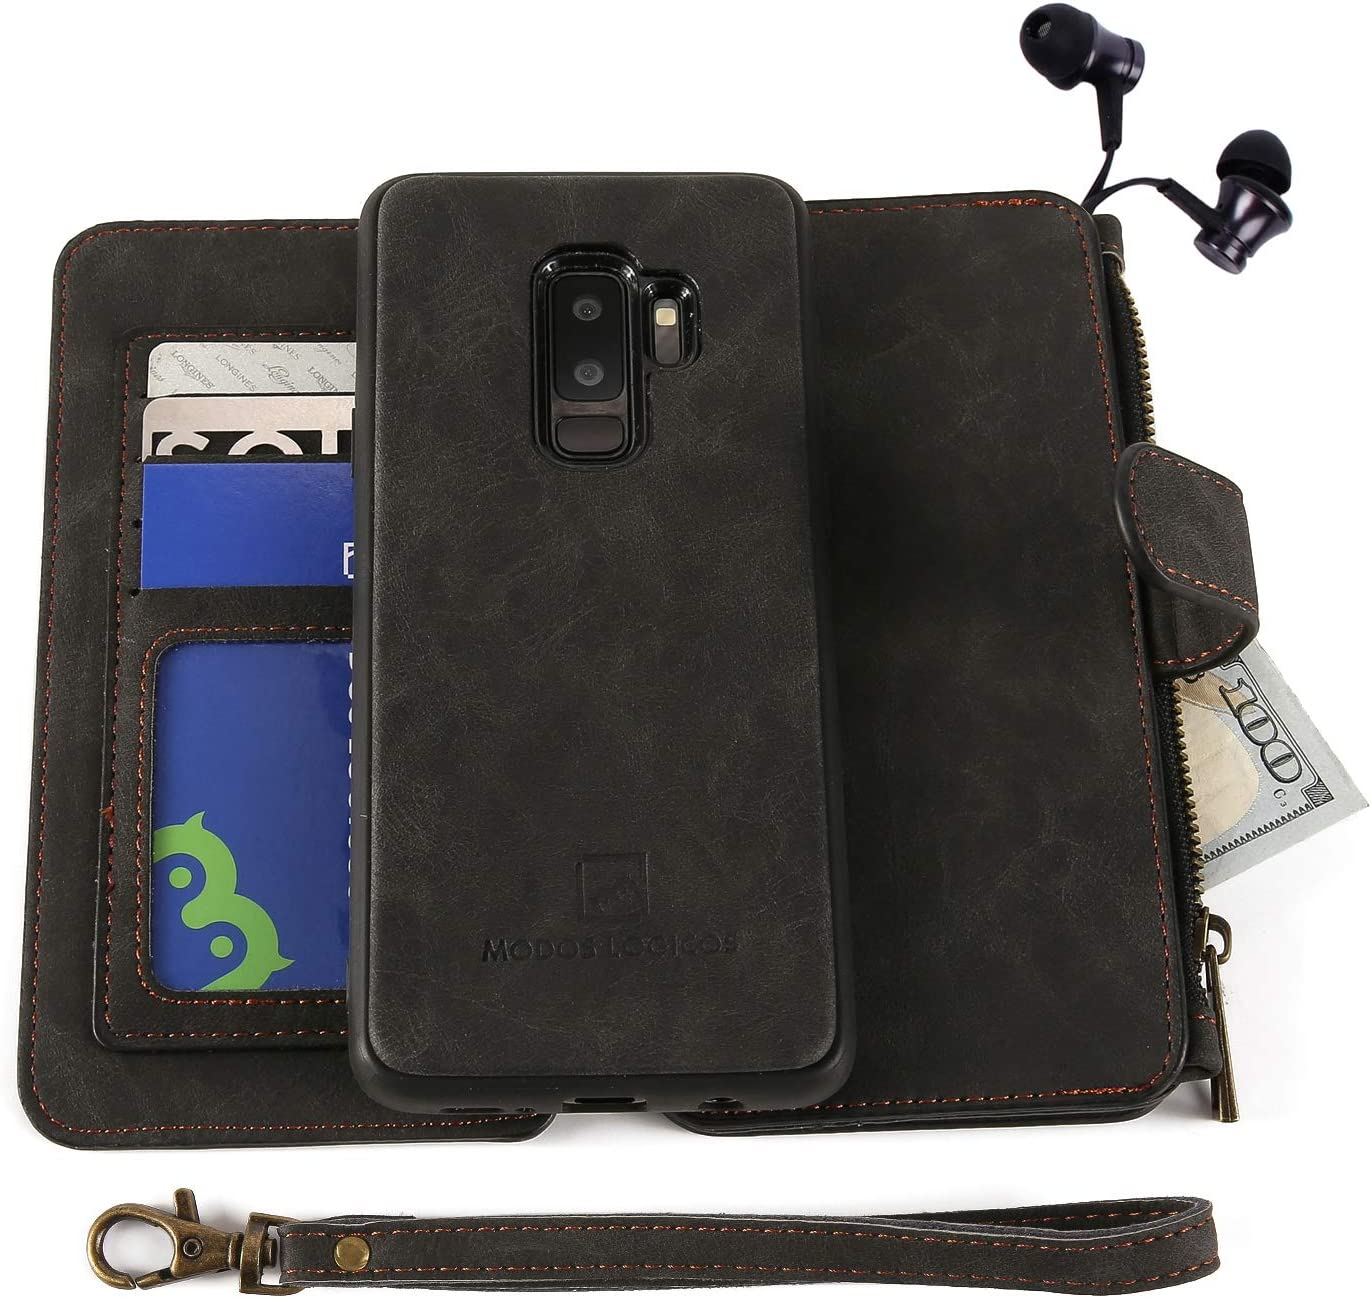 MODOS LOGICOS Case for Samsung Galaxy S9 Plus, [Detachable Wallet Folio][2 in 1][Zipper Cash Storage][14 Card Slots 1 Id Window] PU Leather Purse Clutch with Removable Inner Magnetic TPU Case -Black